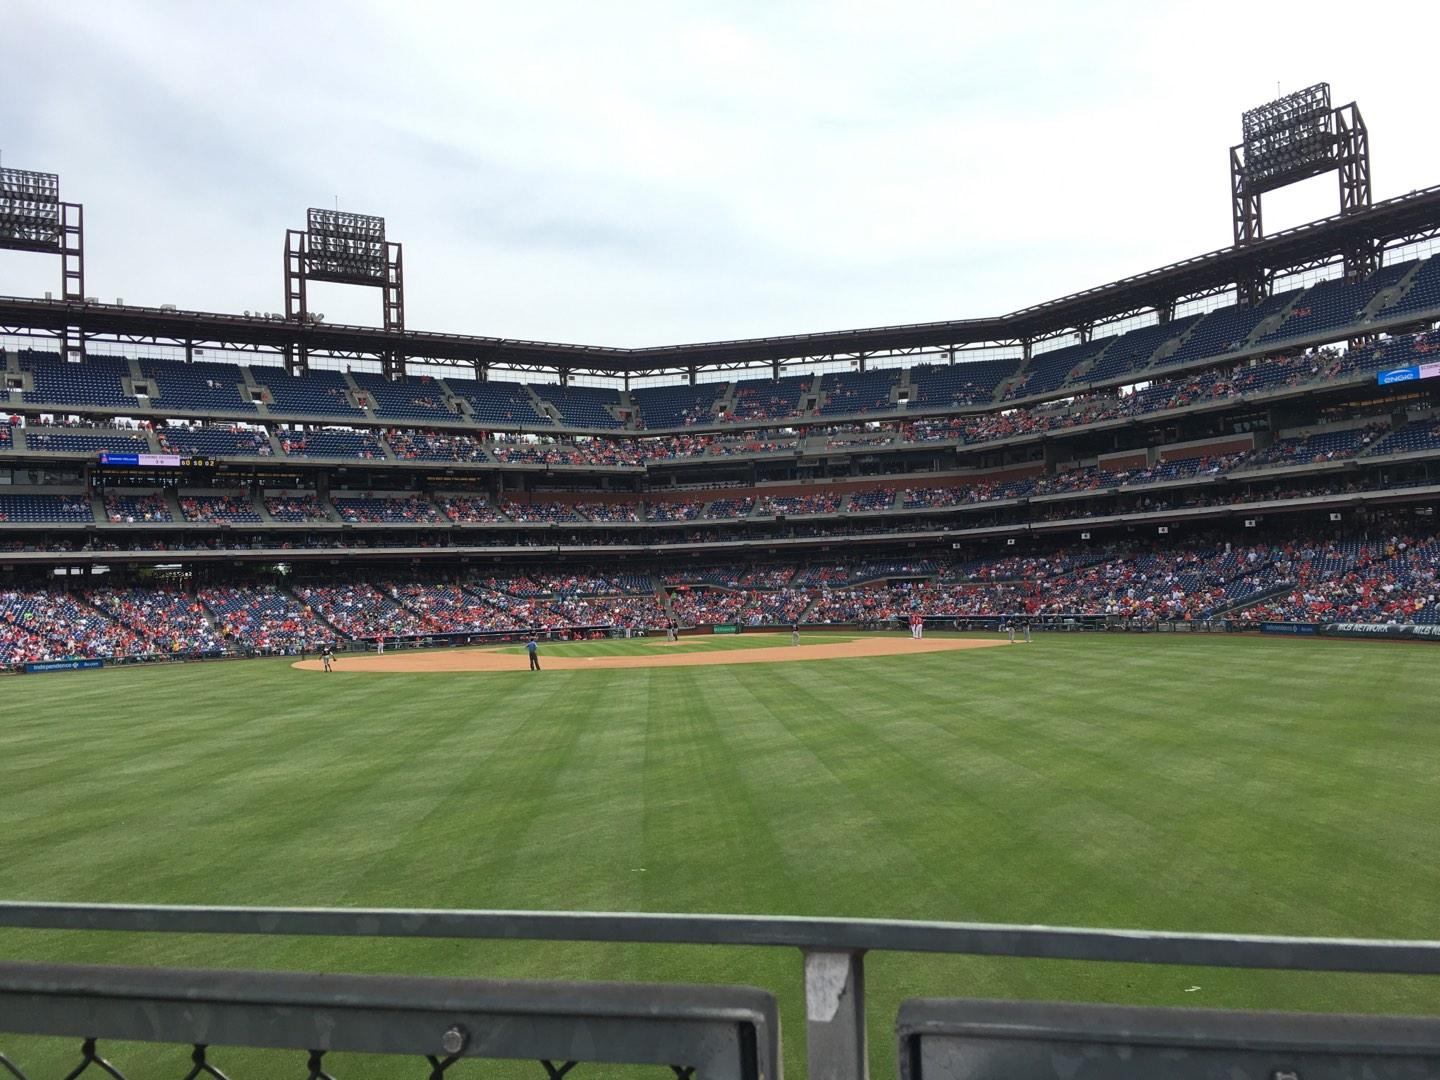 Citizens Bank Park Section 147 Row 4 Seat 13